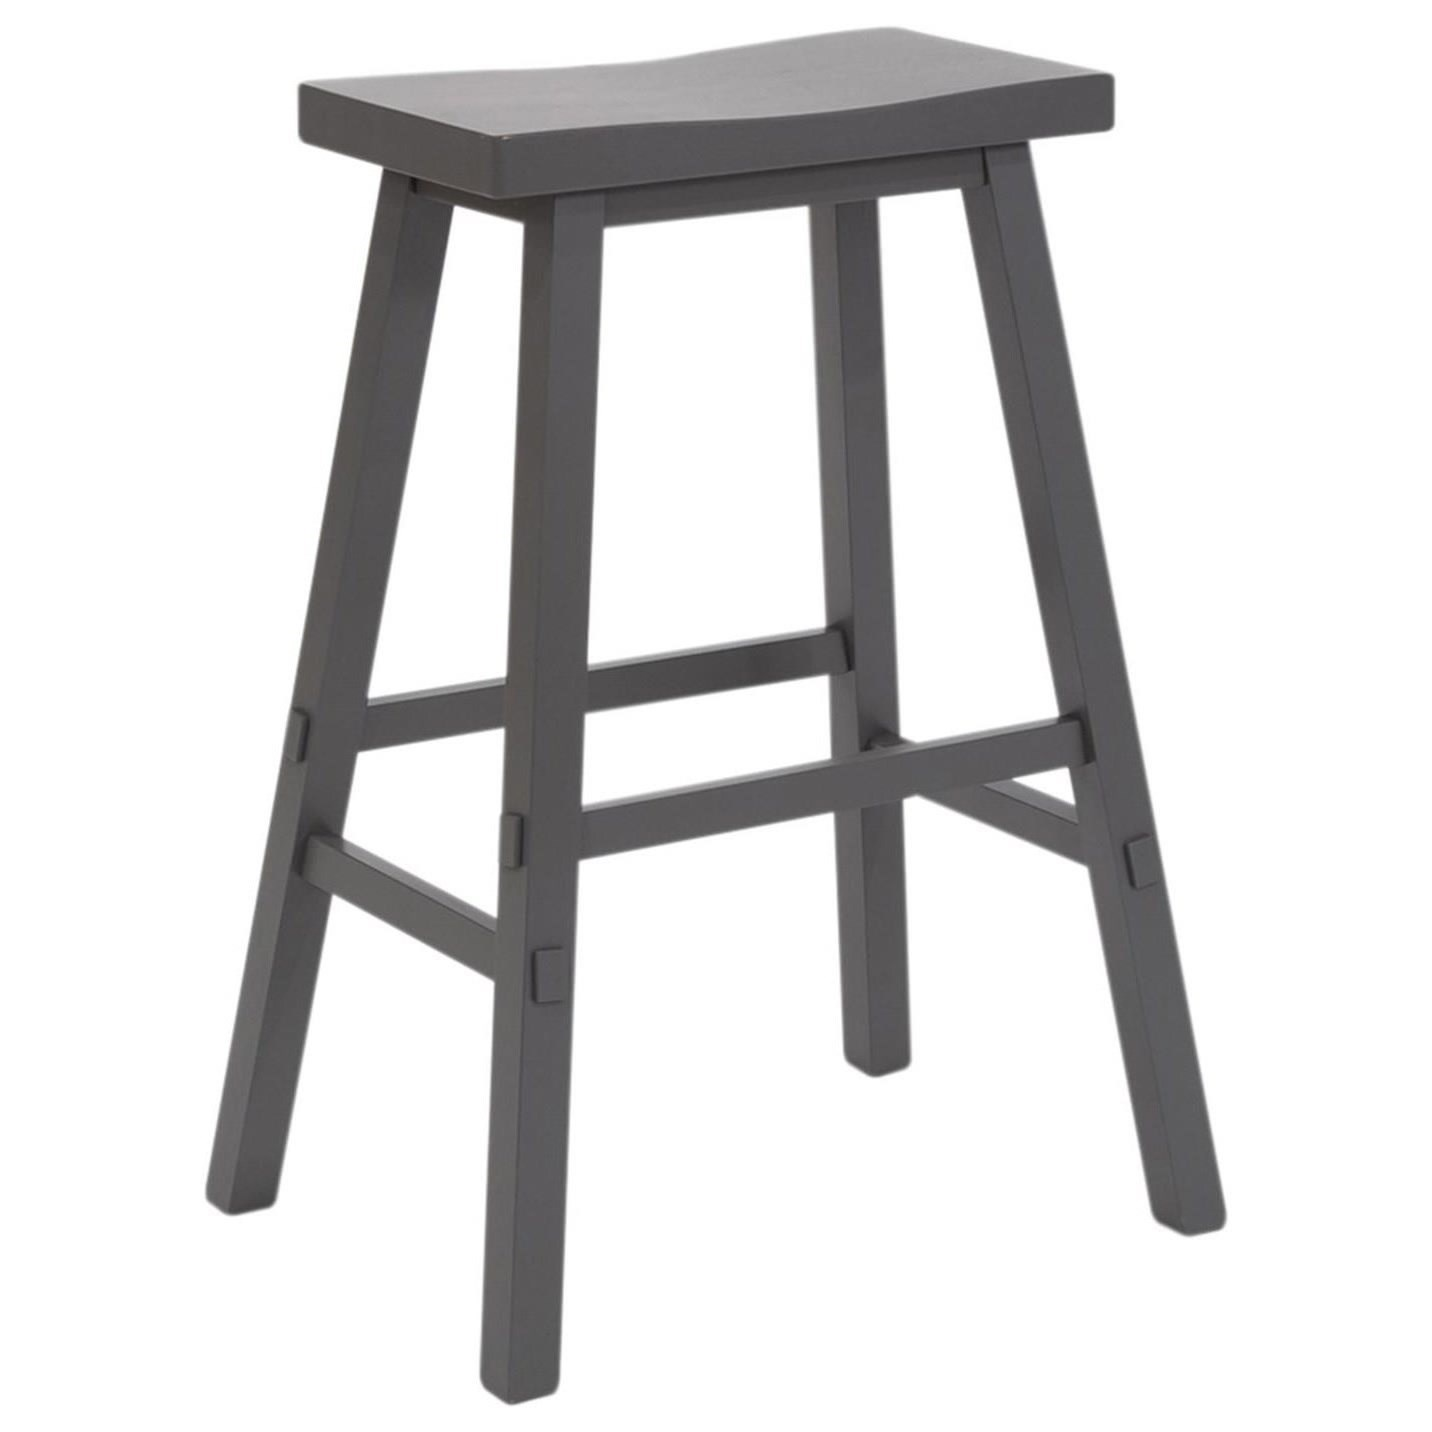 Creations II 30 Inch Sawhorse Barstool by Liberty Furniture at Northeast Factory Direct